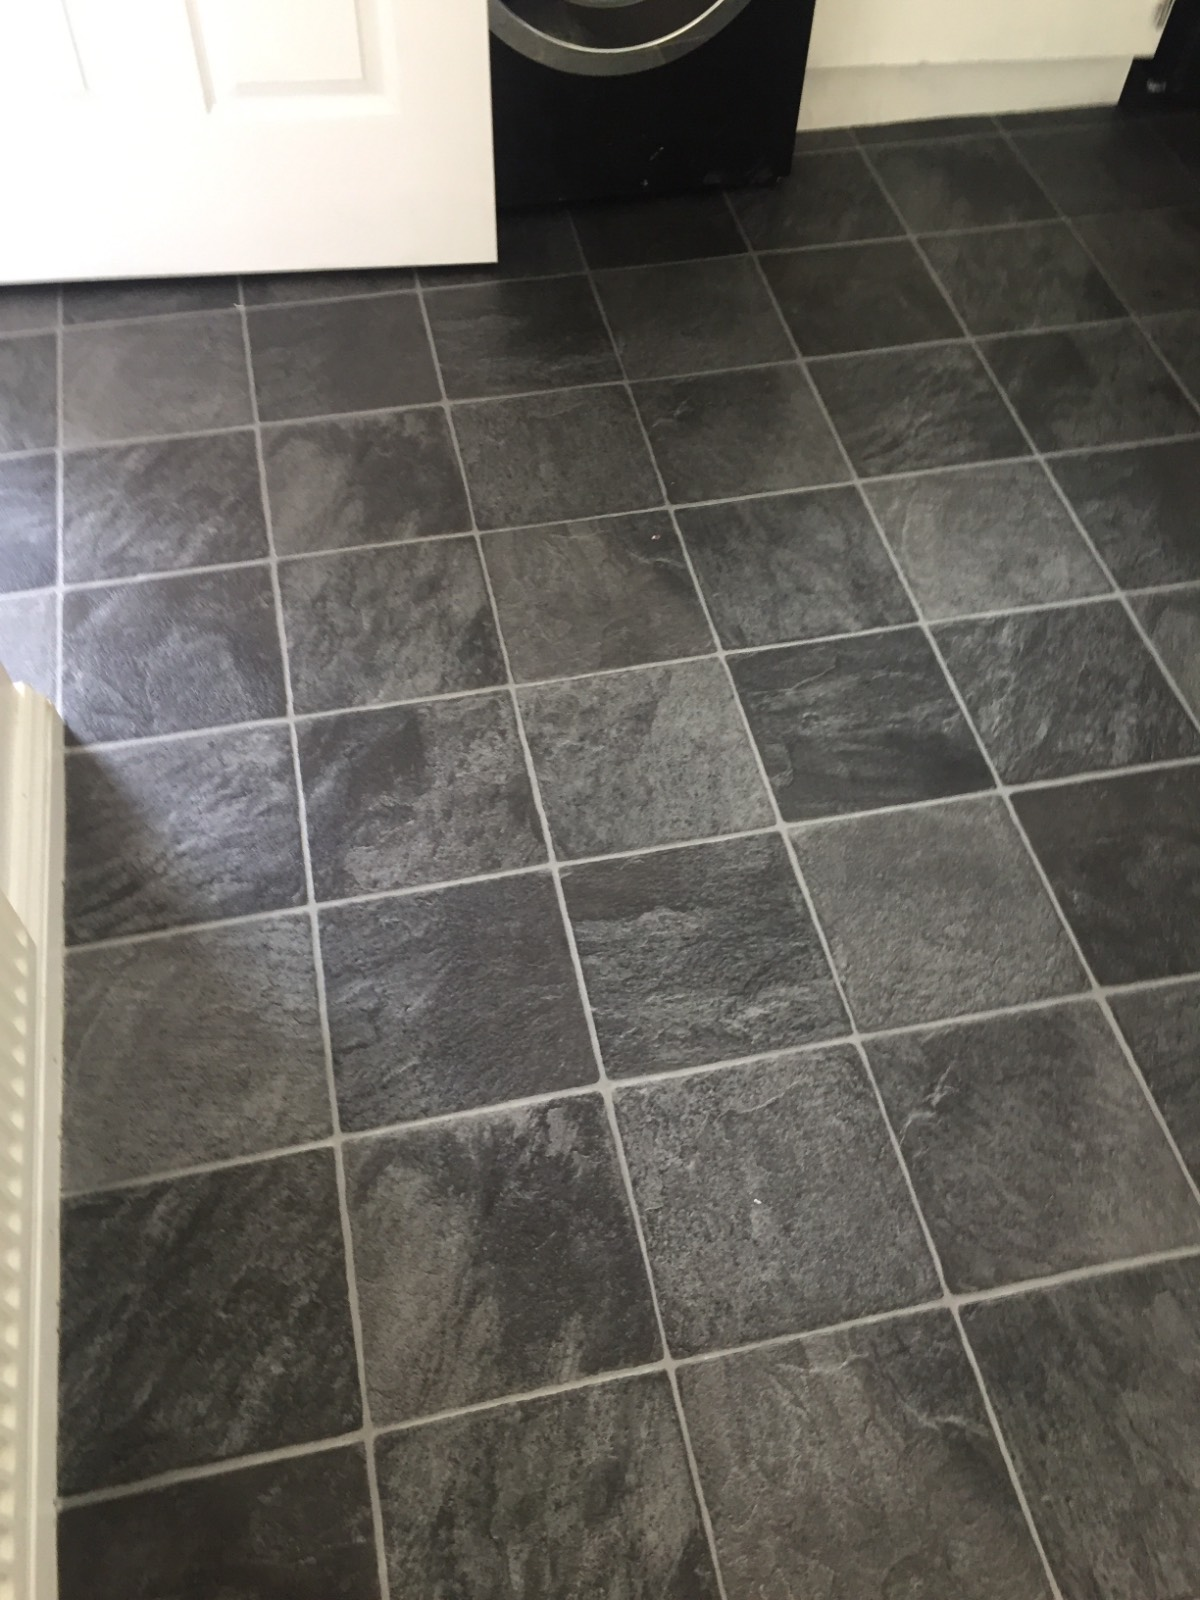 dark tile design vinyl flooring in kitchen